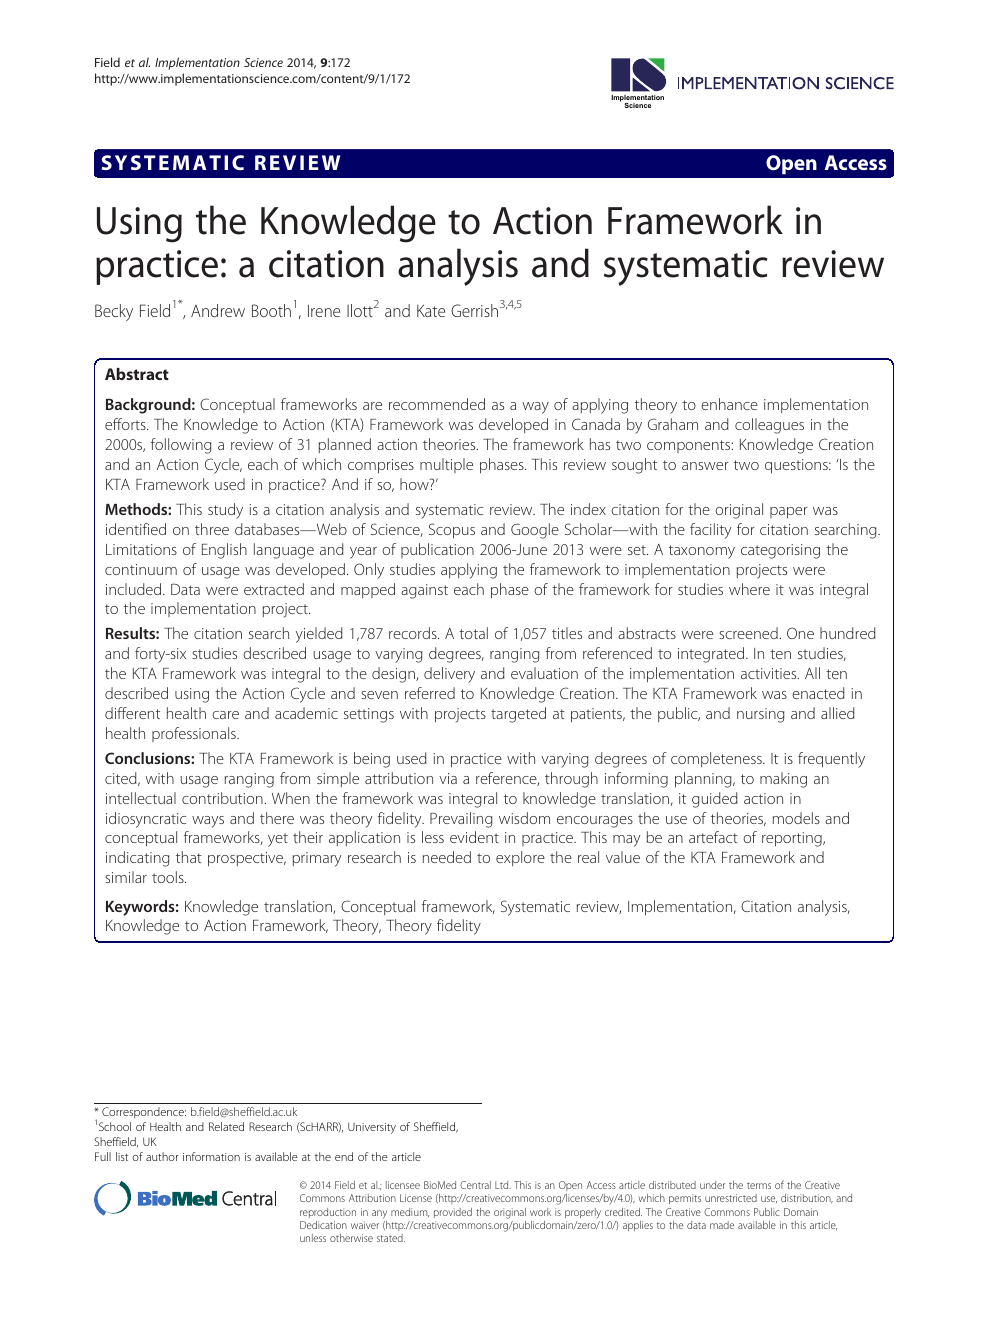 Using the Knowledge to Action Framework in practice: a citation